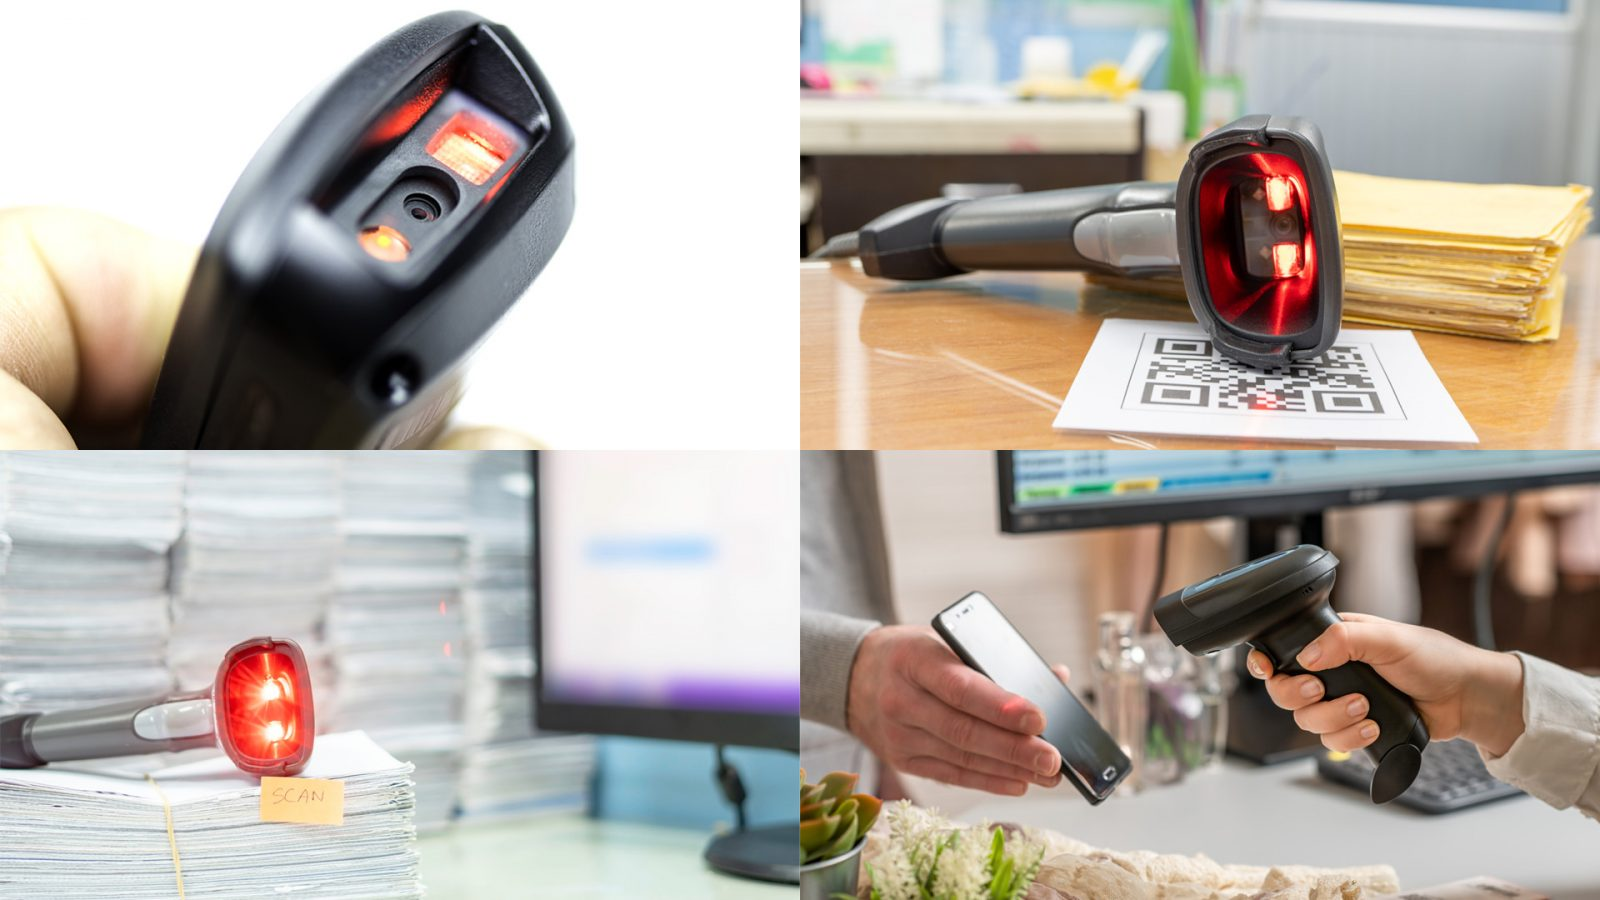 Best barcode scanner for business